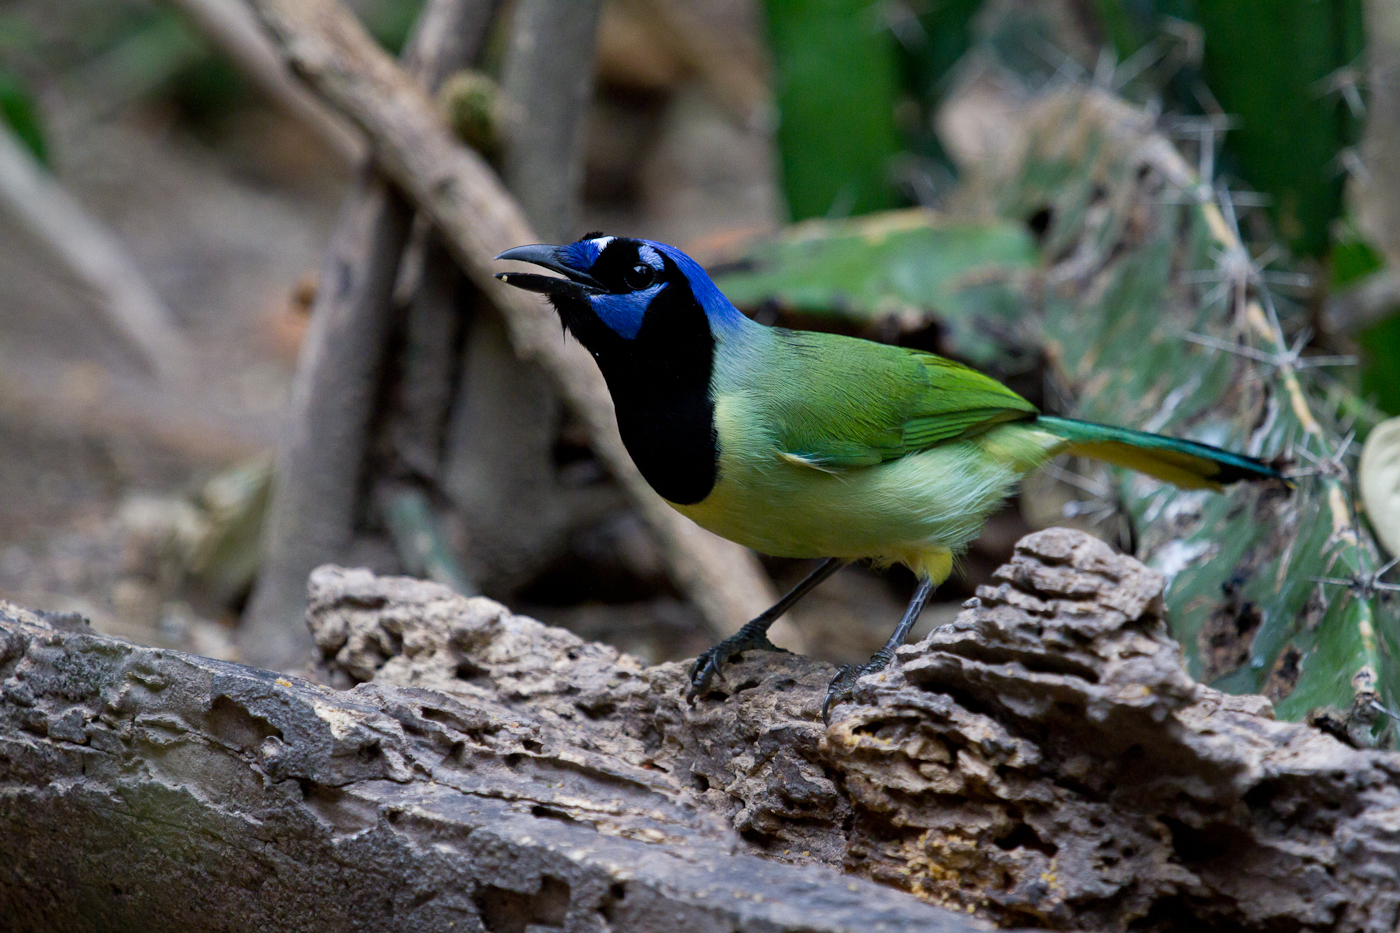 South Texas' most colorful bird, the Green Jay